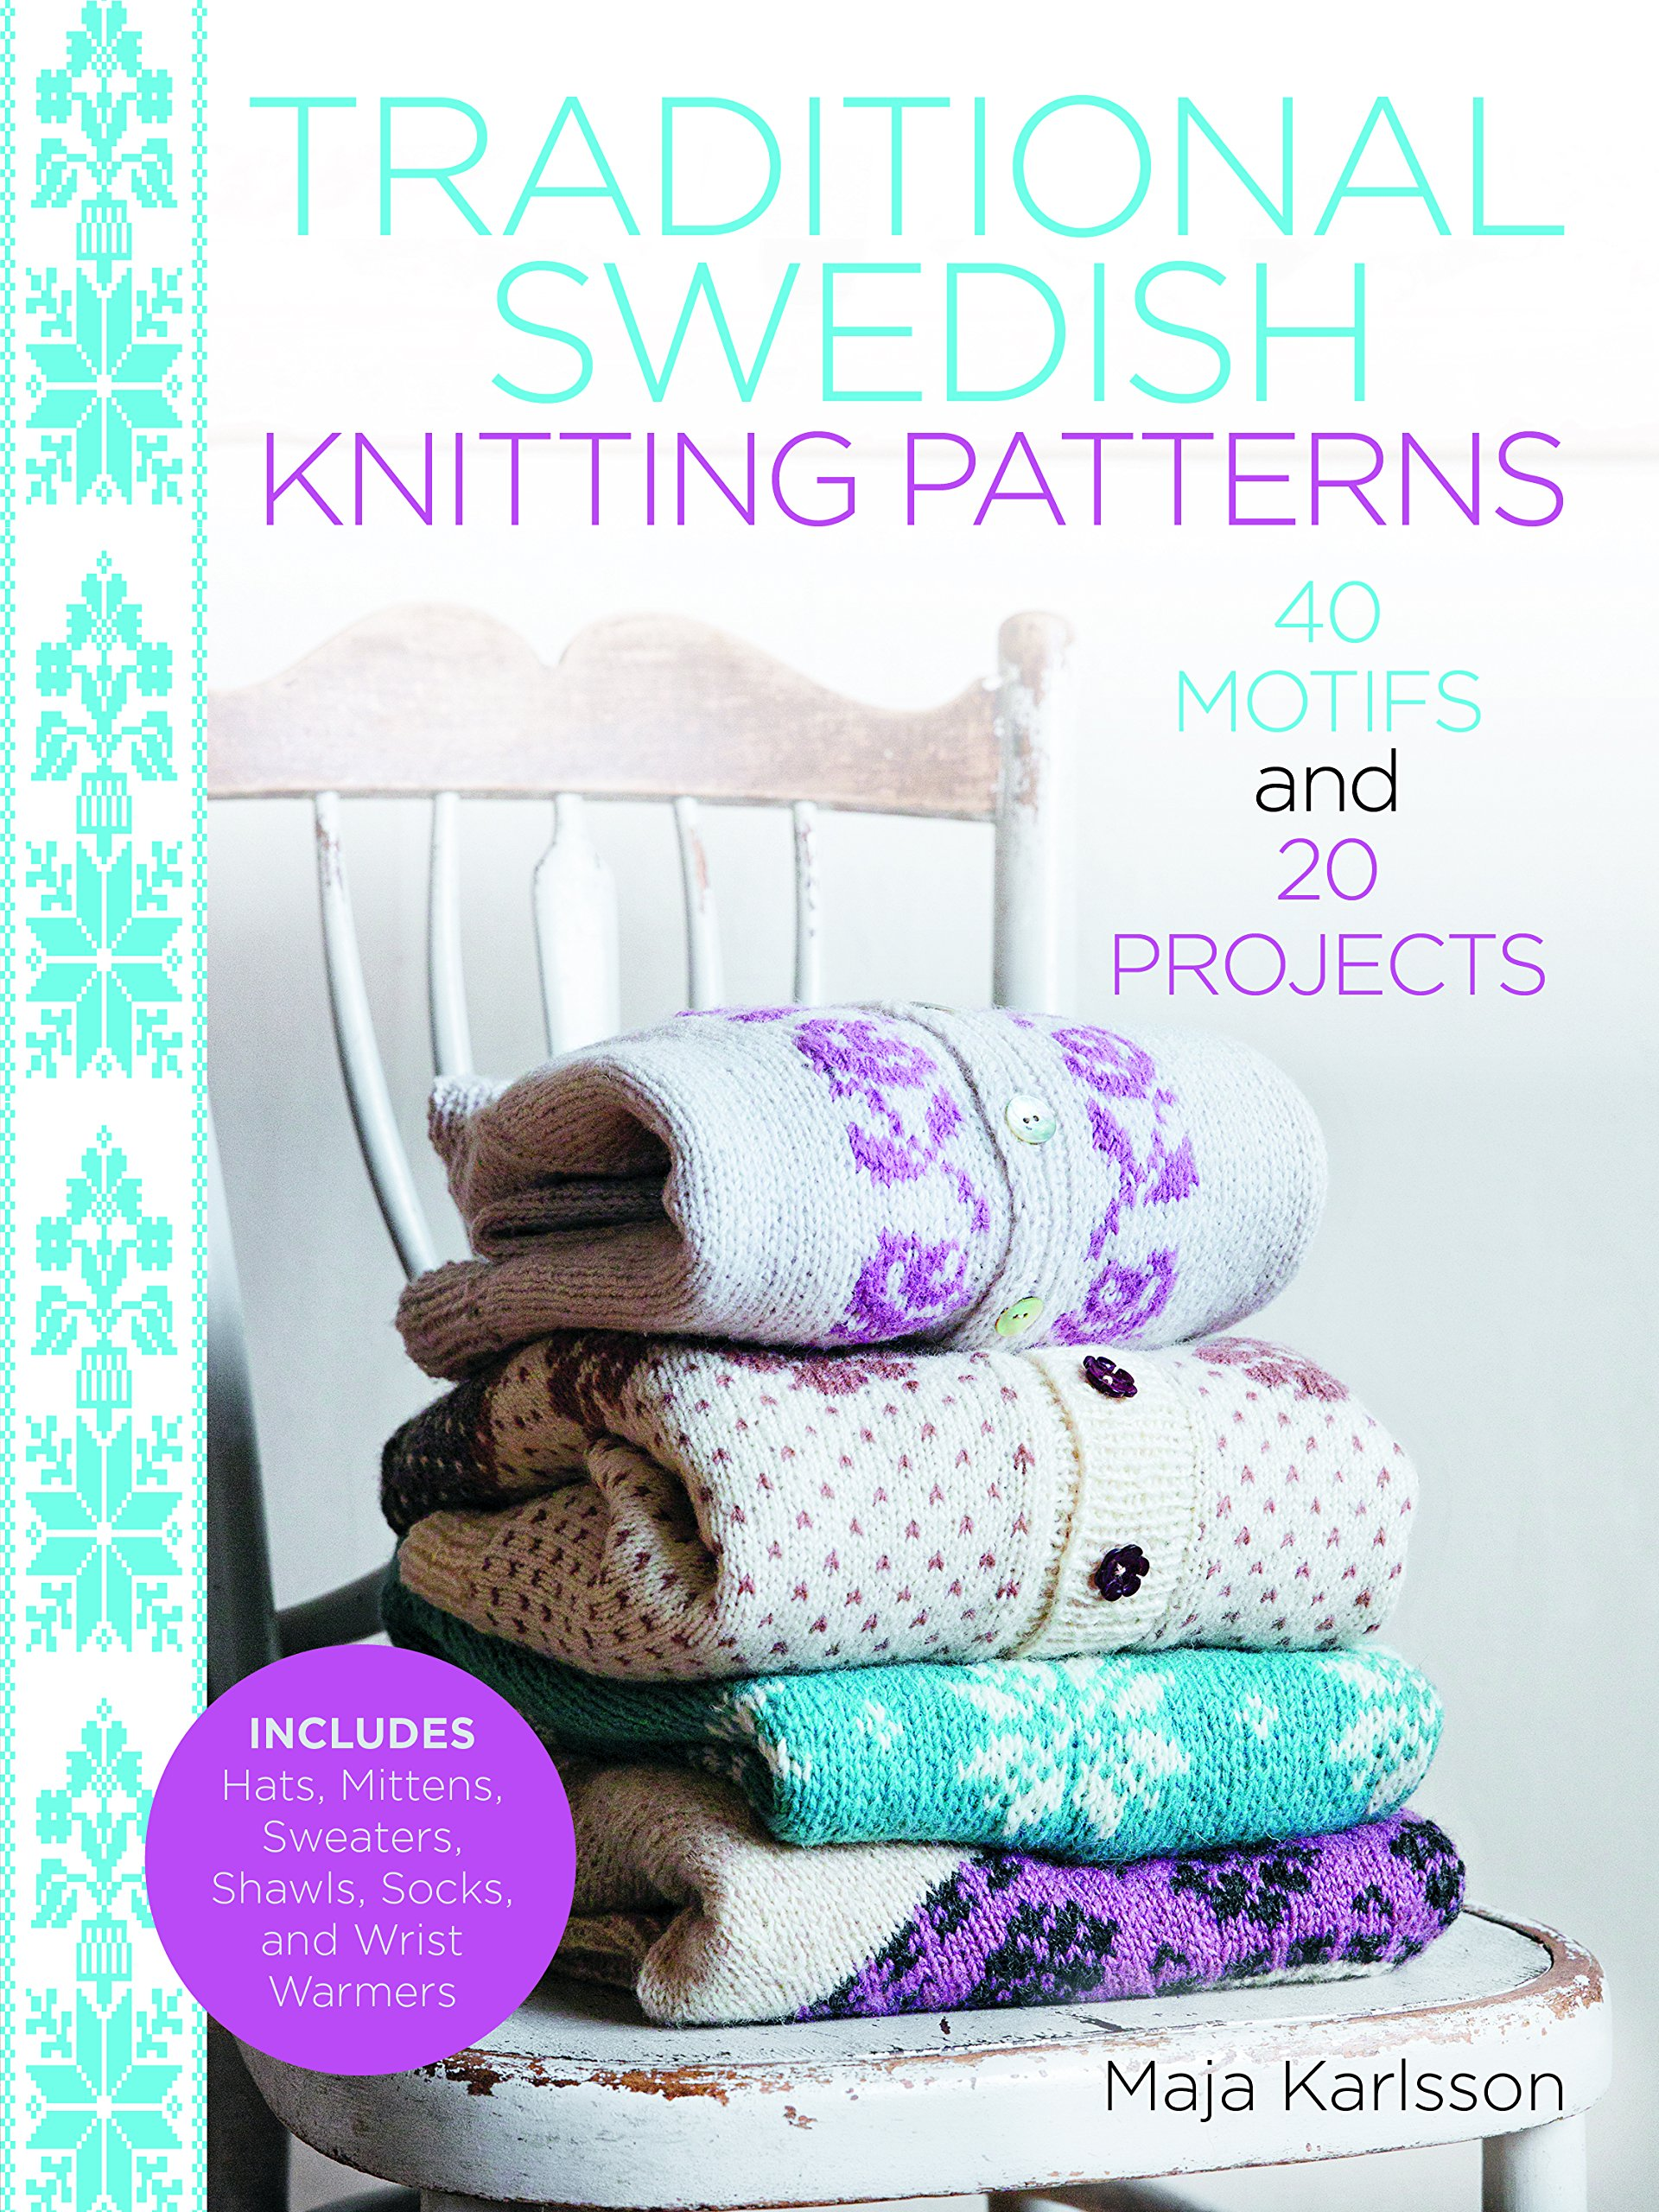 Traditional Swedish Knitting Patterns: 40 Motifs and 20 Projects for Knitters PDF